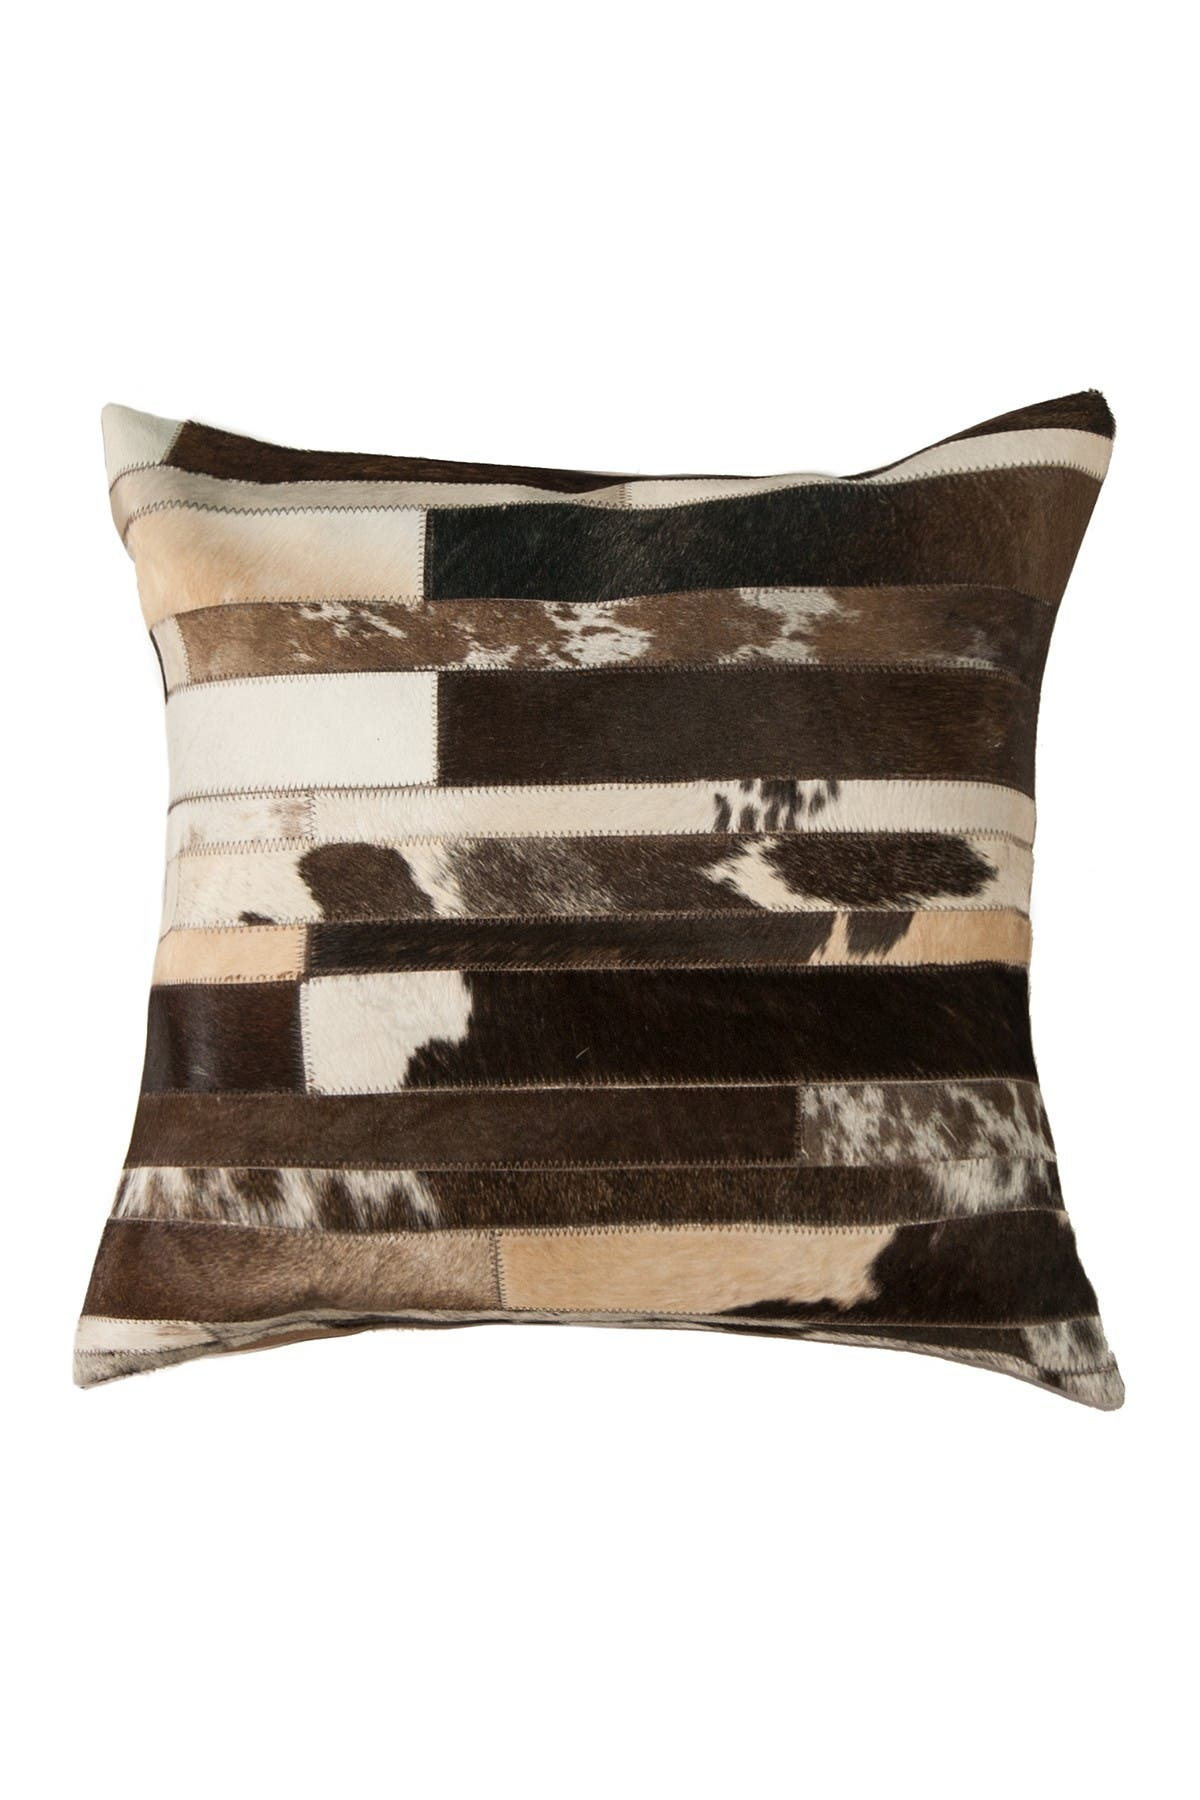 "Image of Natural Torino Classic Large Madrid Genuine Cowhide Pillow - 22""x22"" - Chocolate/White"